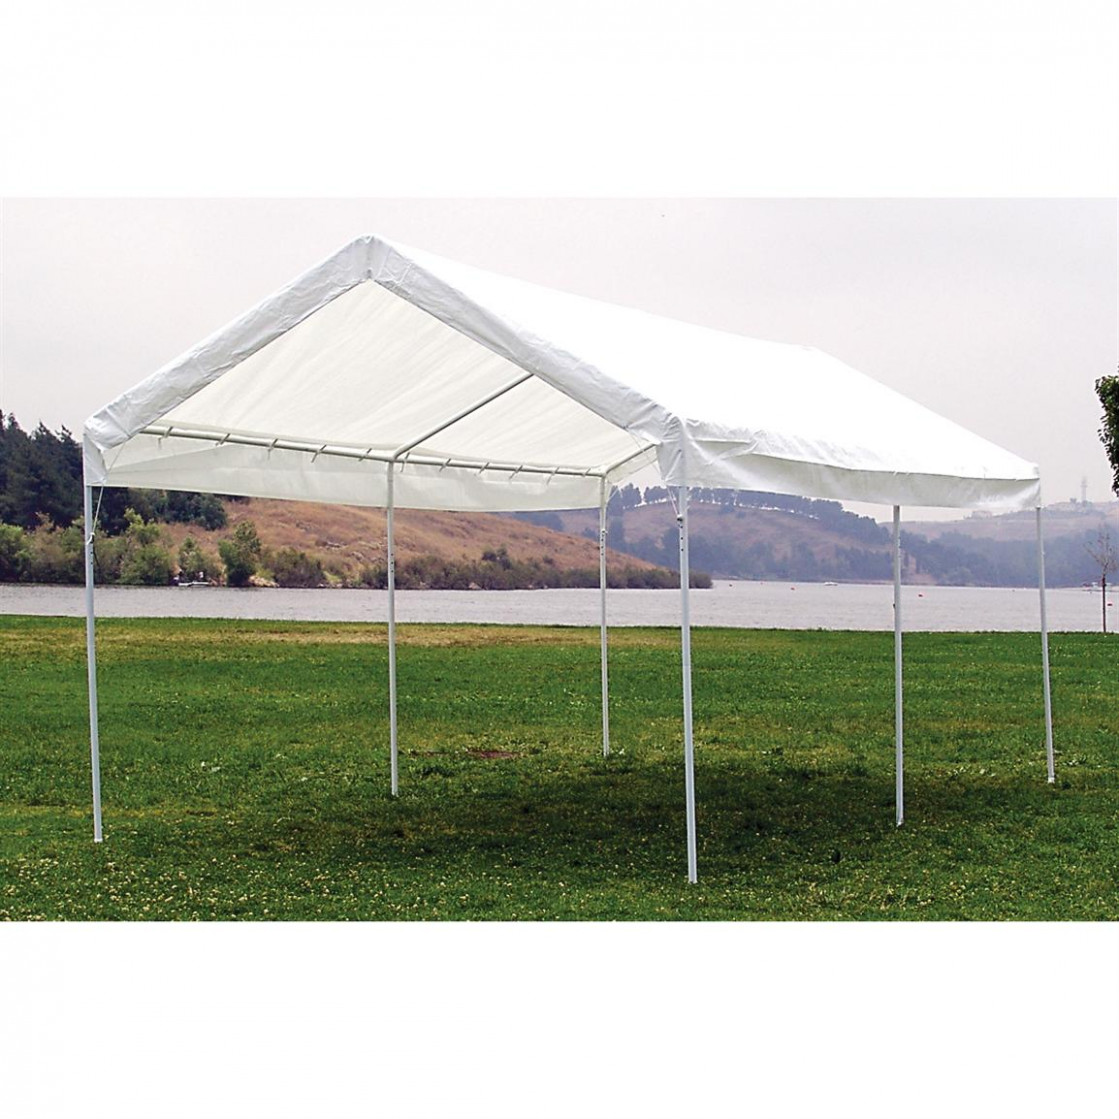 MAC Sports®10x20' Canopy Carport 151420, Canopy, Screen ..